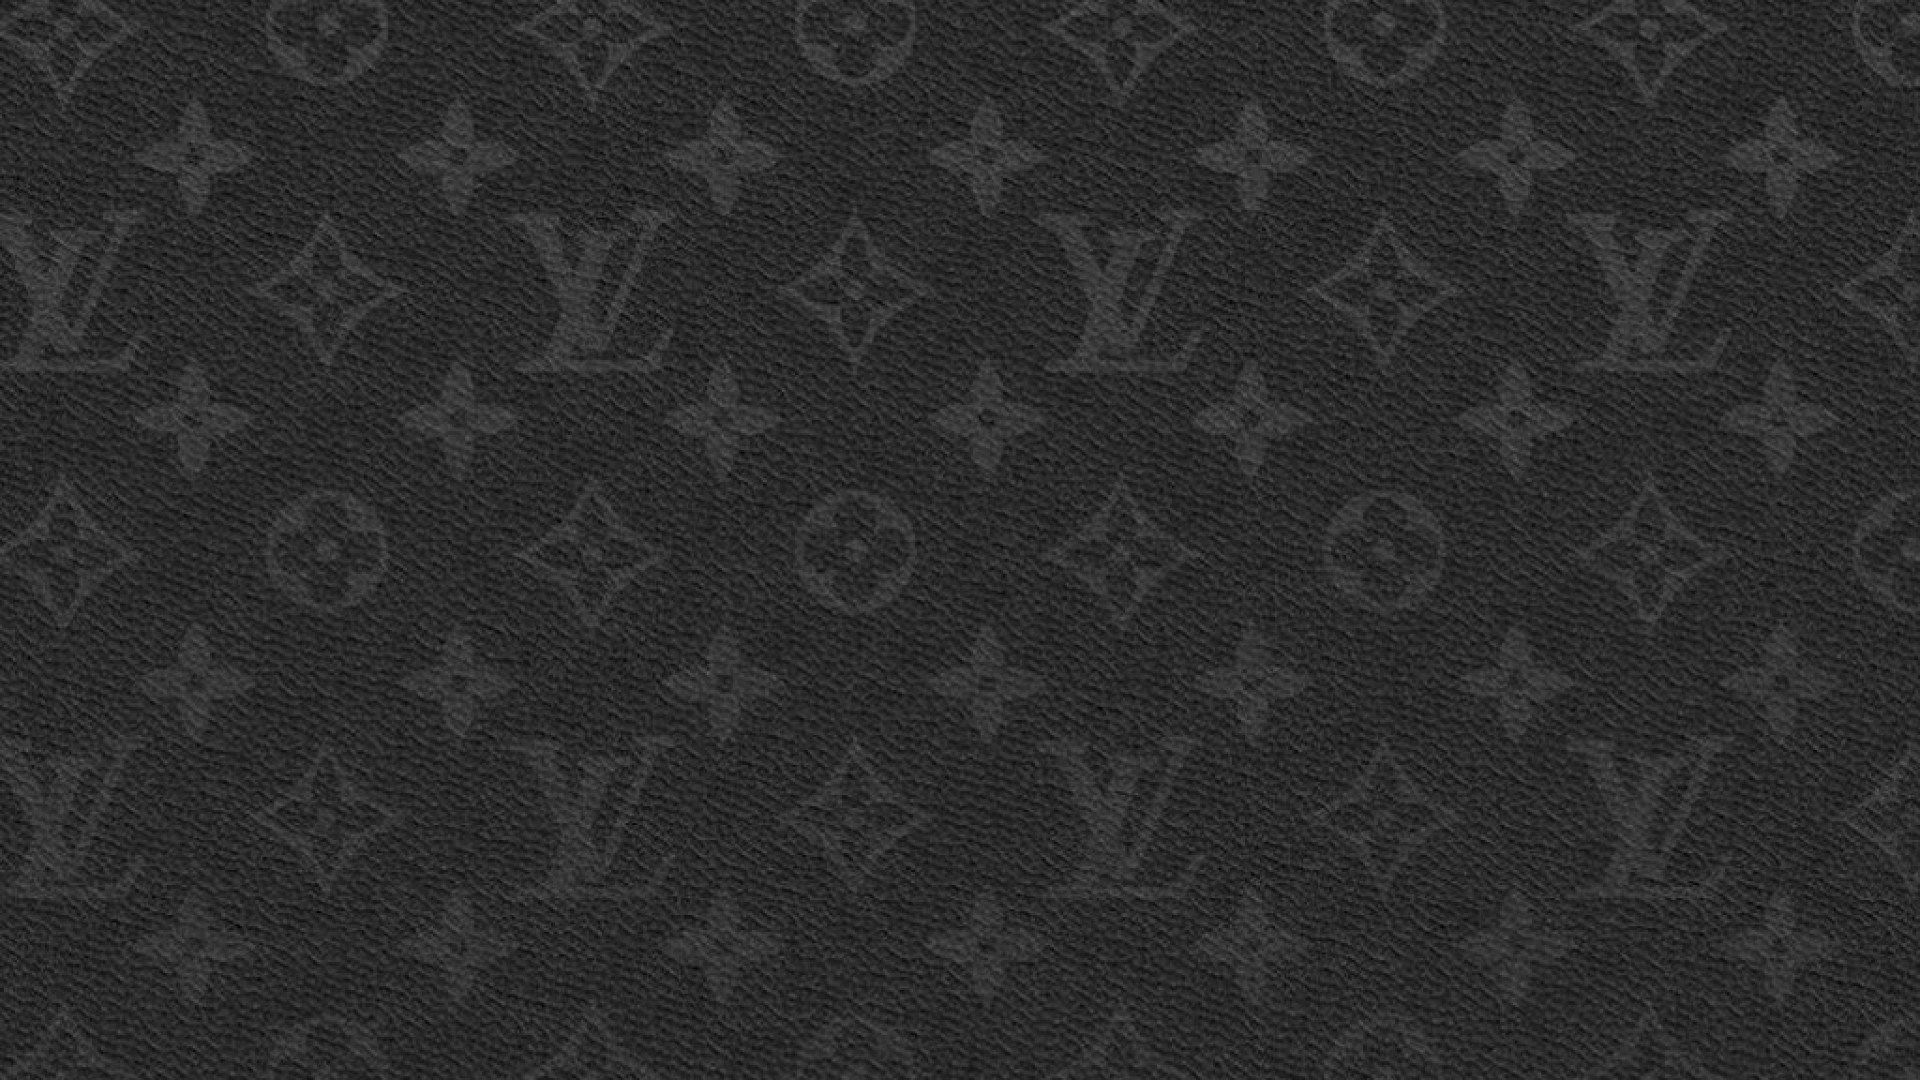 Great Wallpaper Macbook Louis Vuitton - 5be16da52326d4b295dda51c53bb9072  Best Photo Reference_175046.jpg